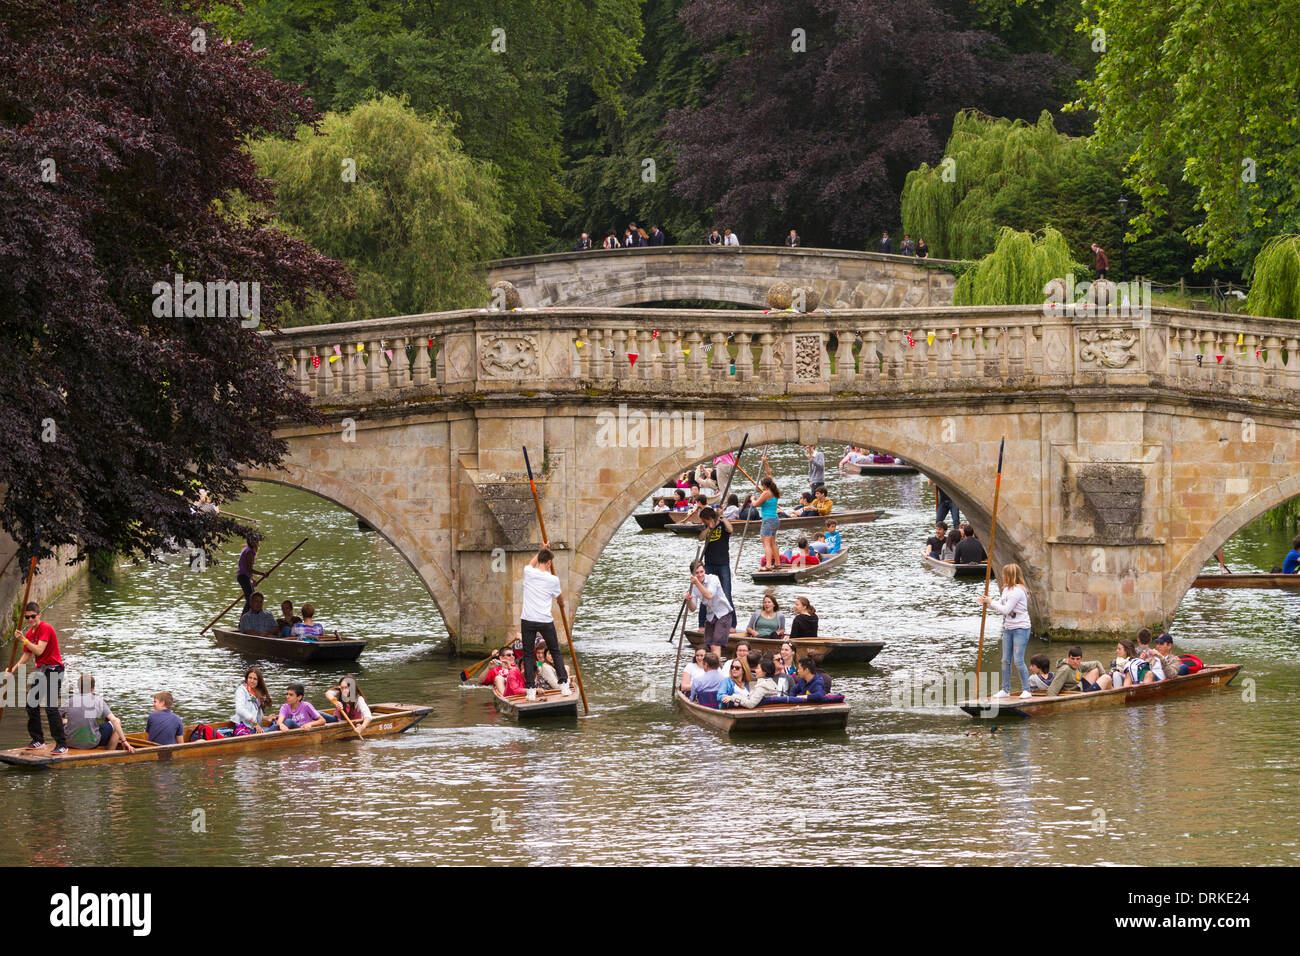 People punting on River Cam Clare Bridge background, Cambridge, England - Stock Image